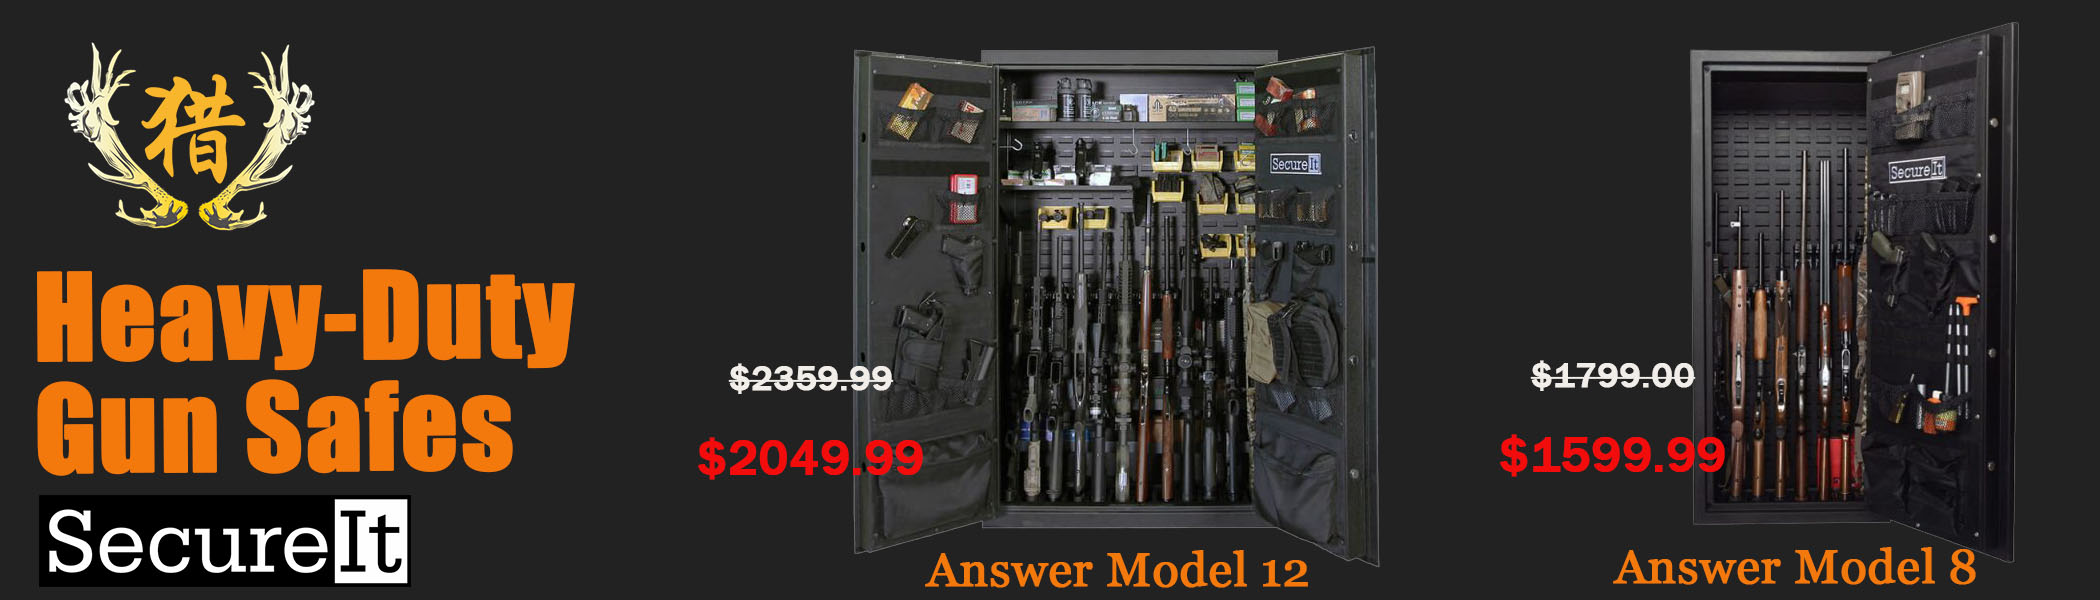 SecureIt heavy-duty gun safes on sale